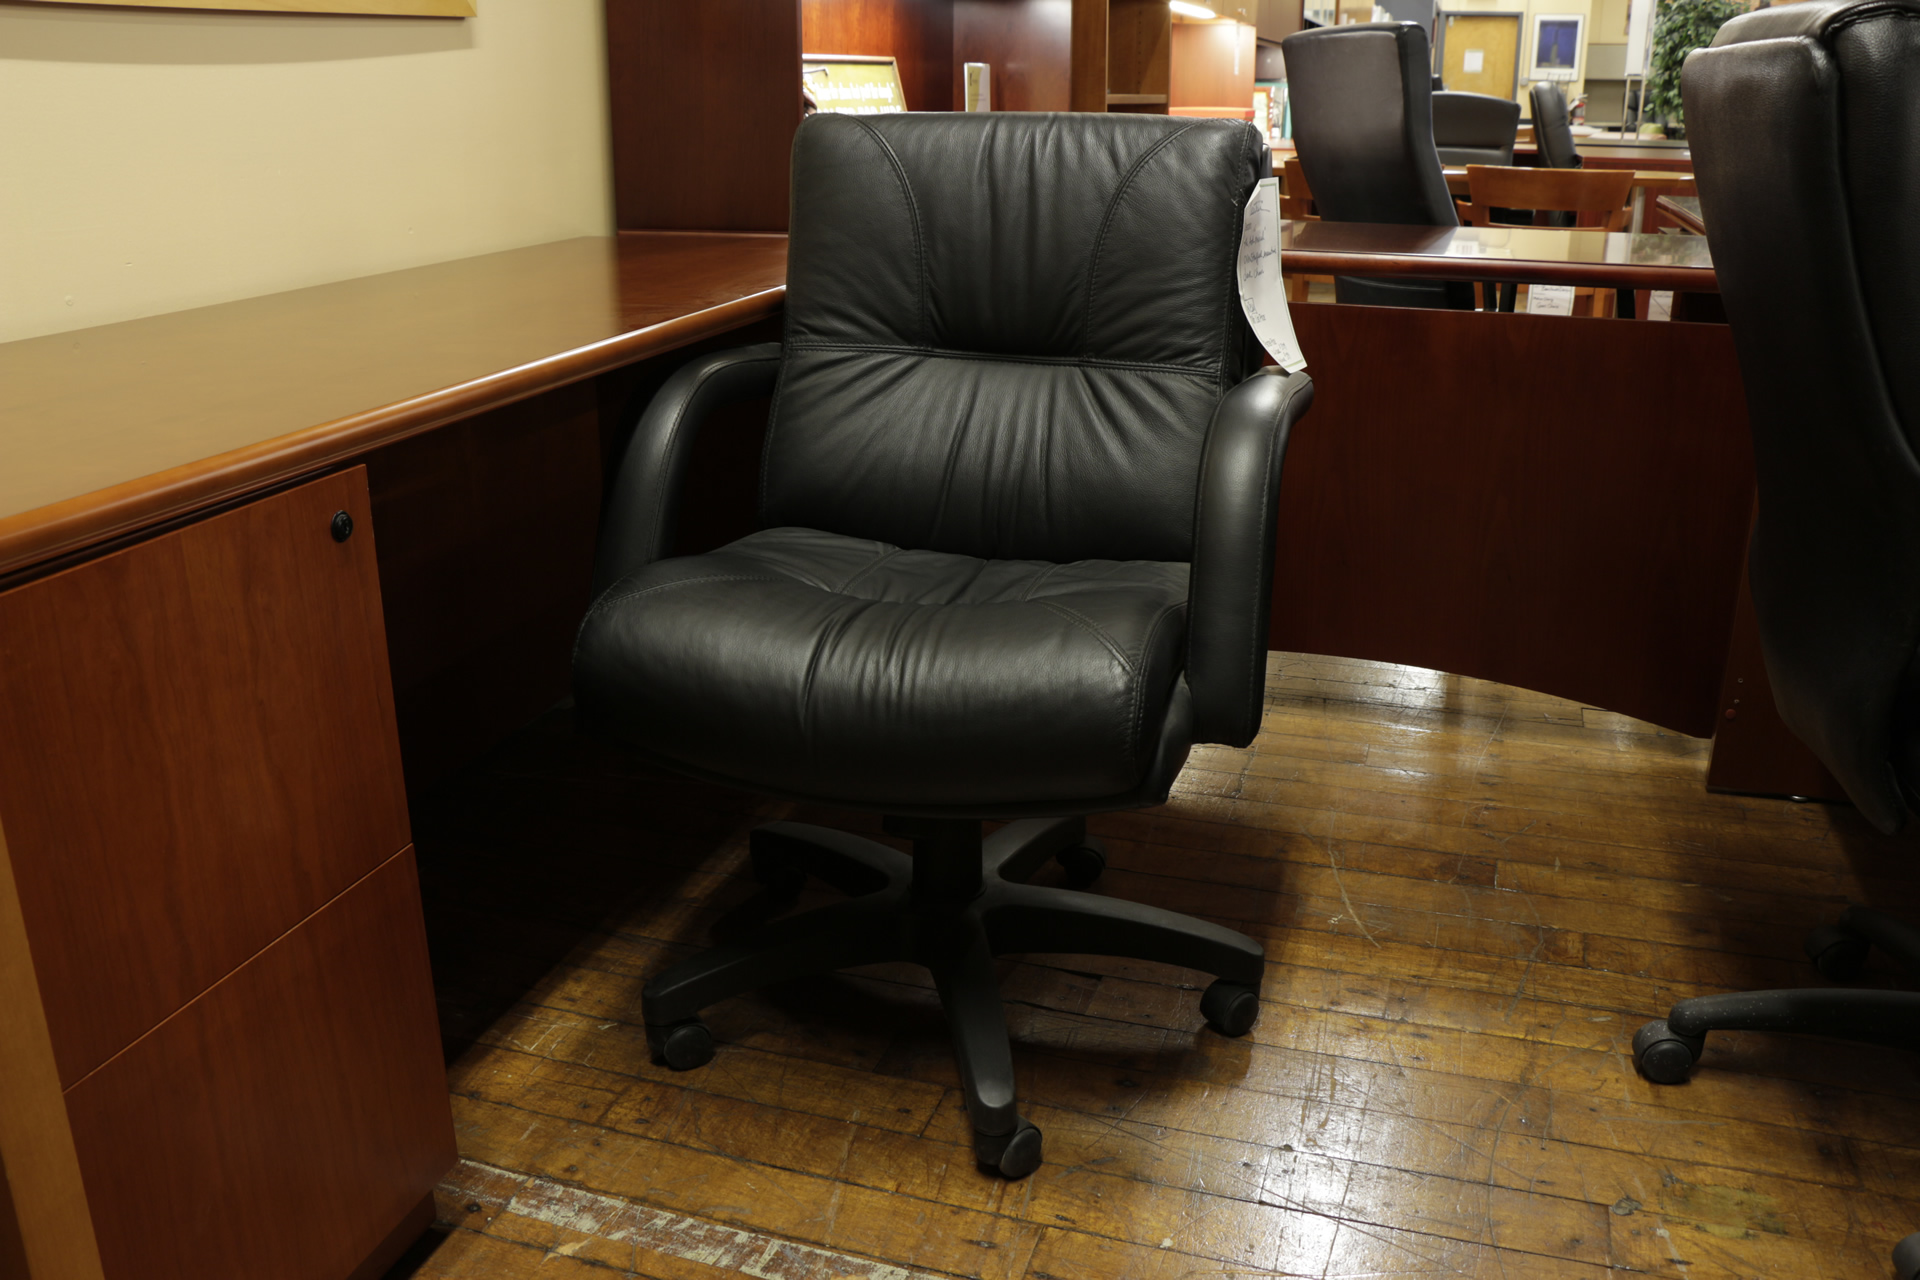 peartreeofficefurniture_peartreeofficefurniture_mg_2973.jpg